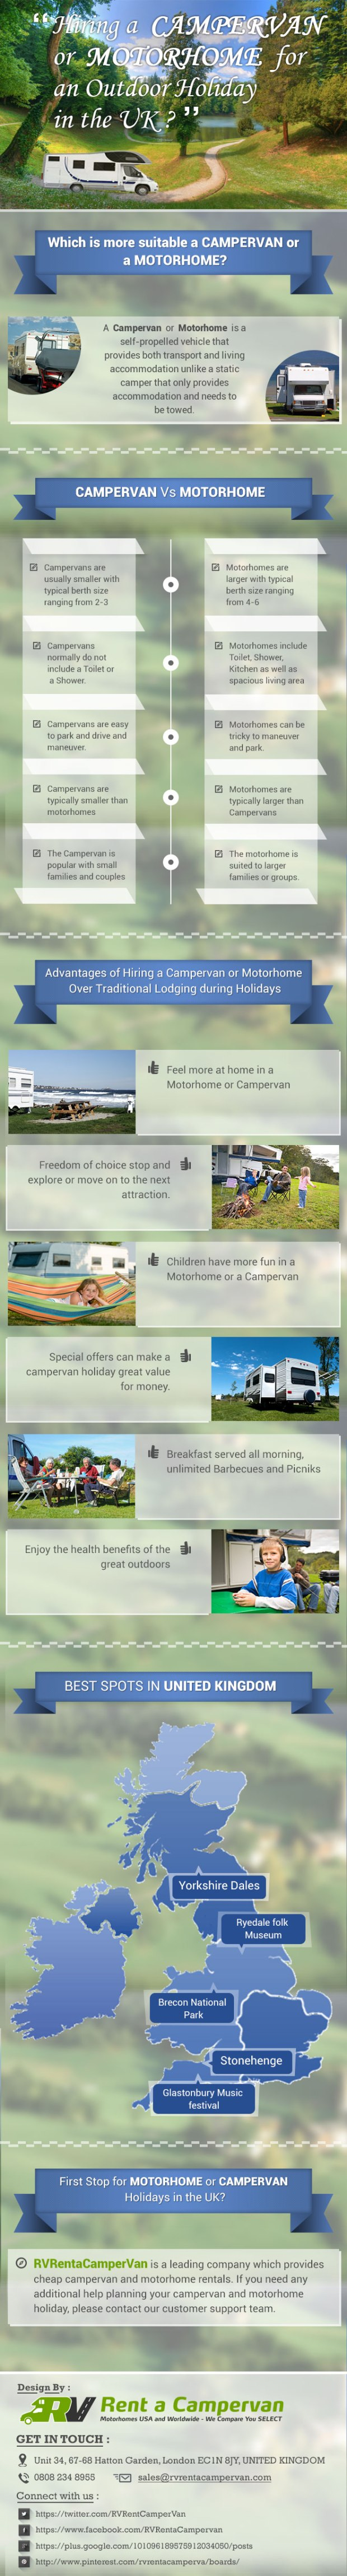 whats-the-difference-between-a-motorhome-and-a-campervan_5260ccee86735